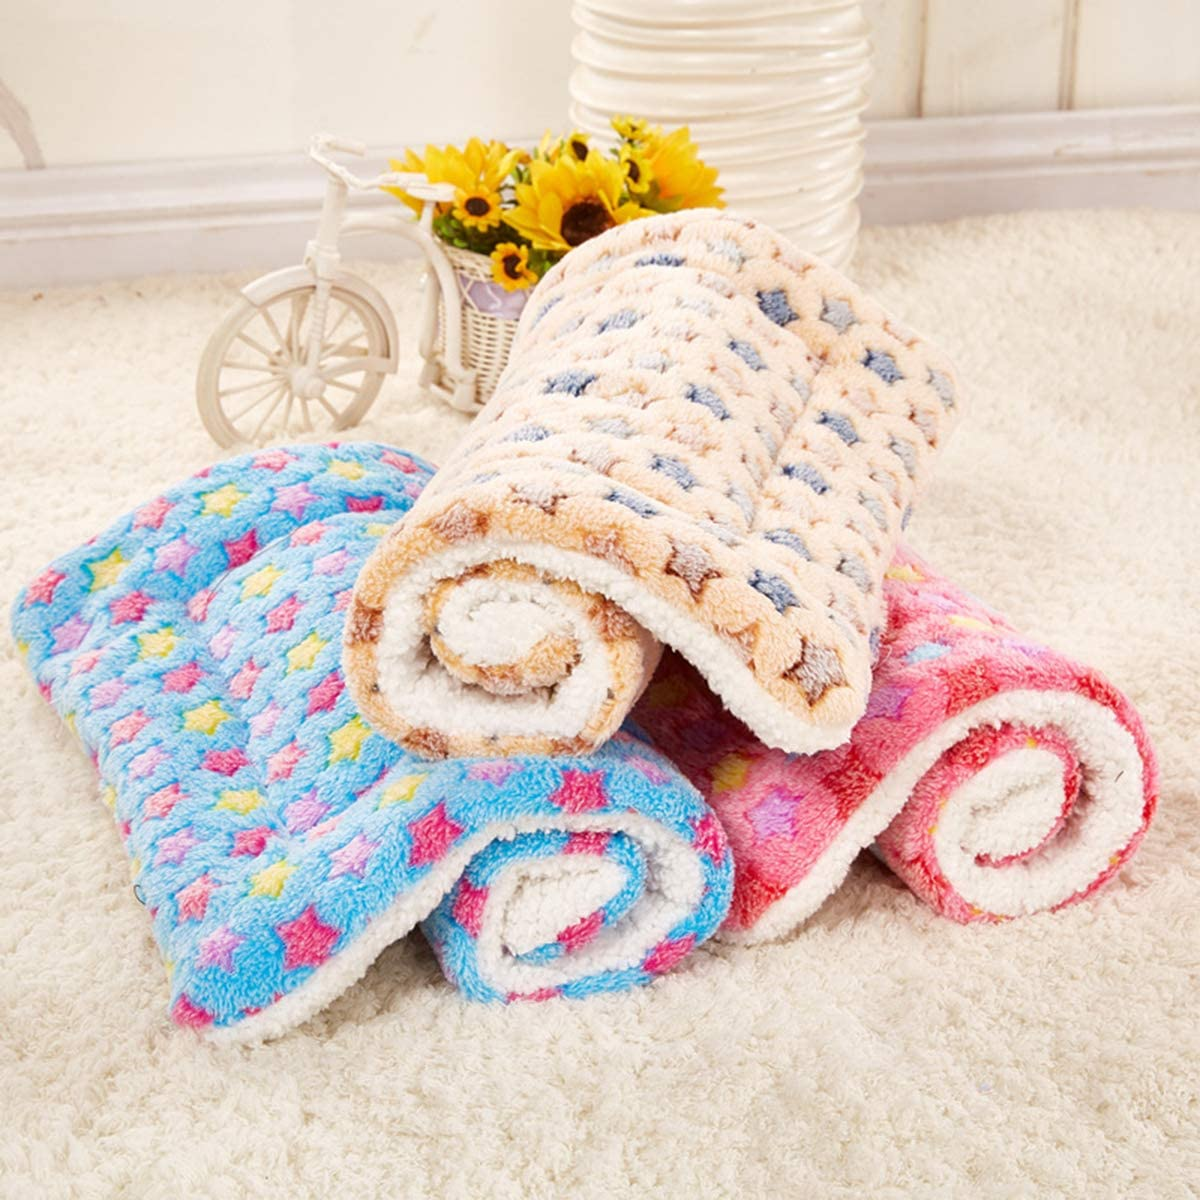 Bed for Pet Mat Soft Cushion Warm Quilt Cotton Smoro Dog Blanket Fleece Pet Blanket for Dogs Cats